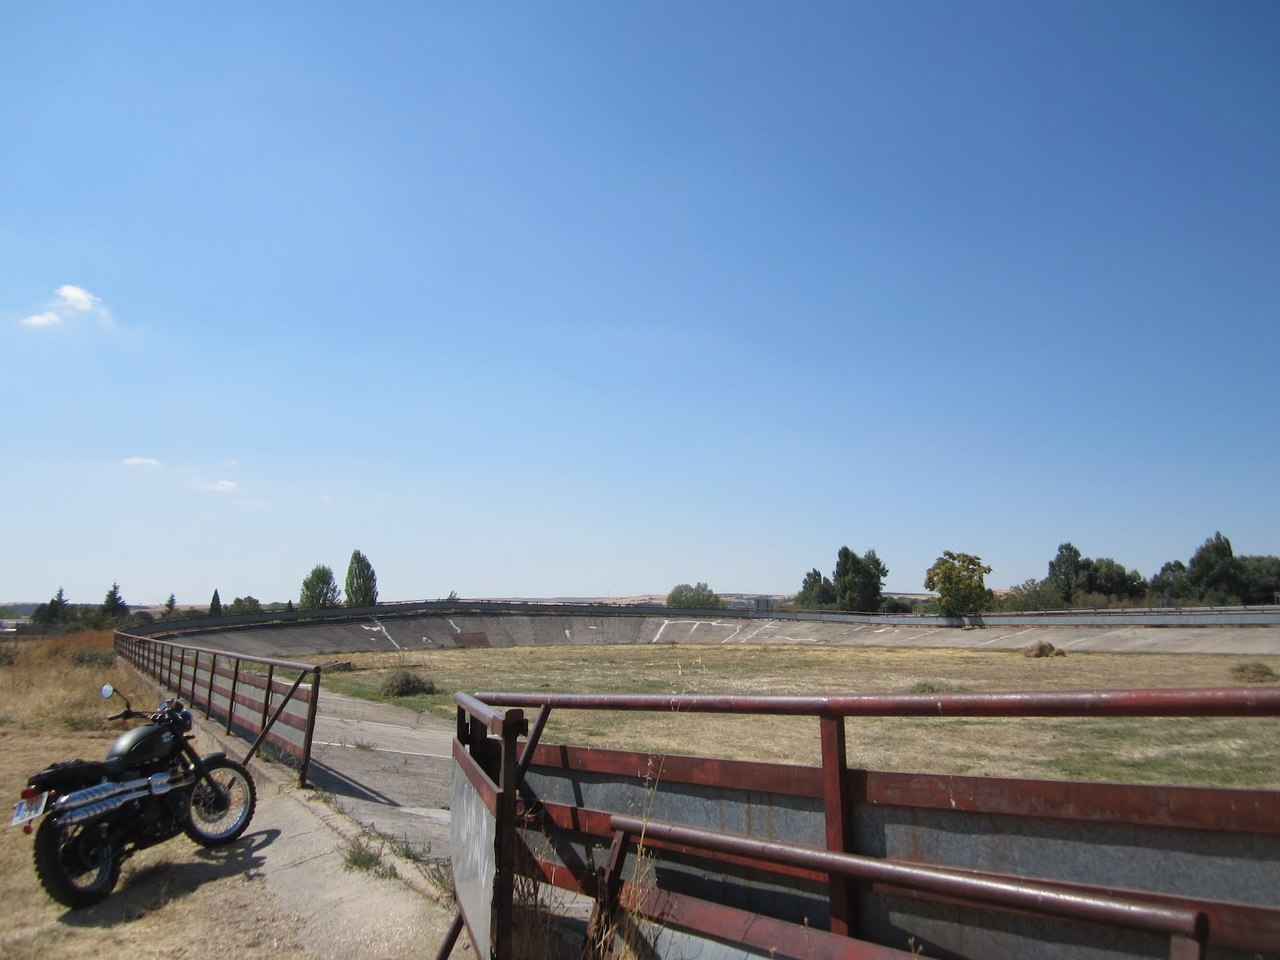 A Triumph Scrambler and an old velodrome in Castilla.